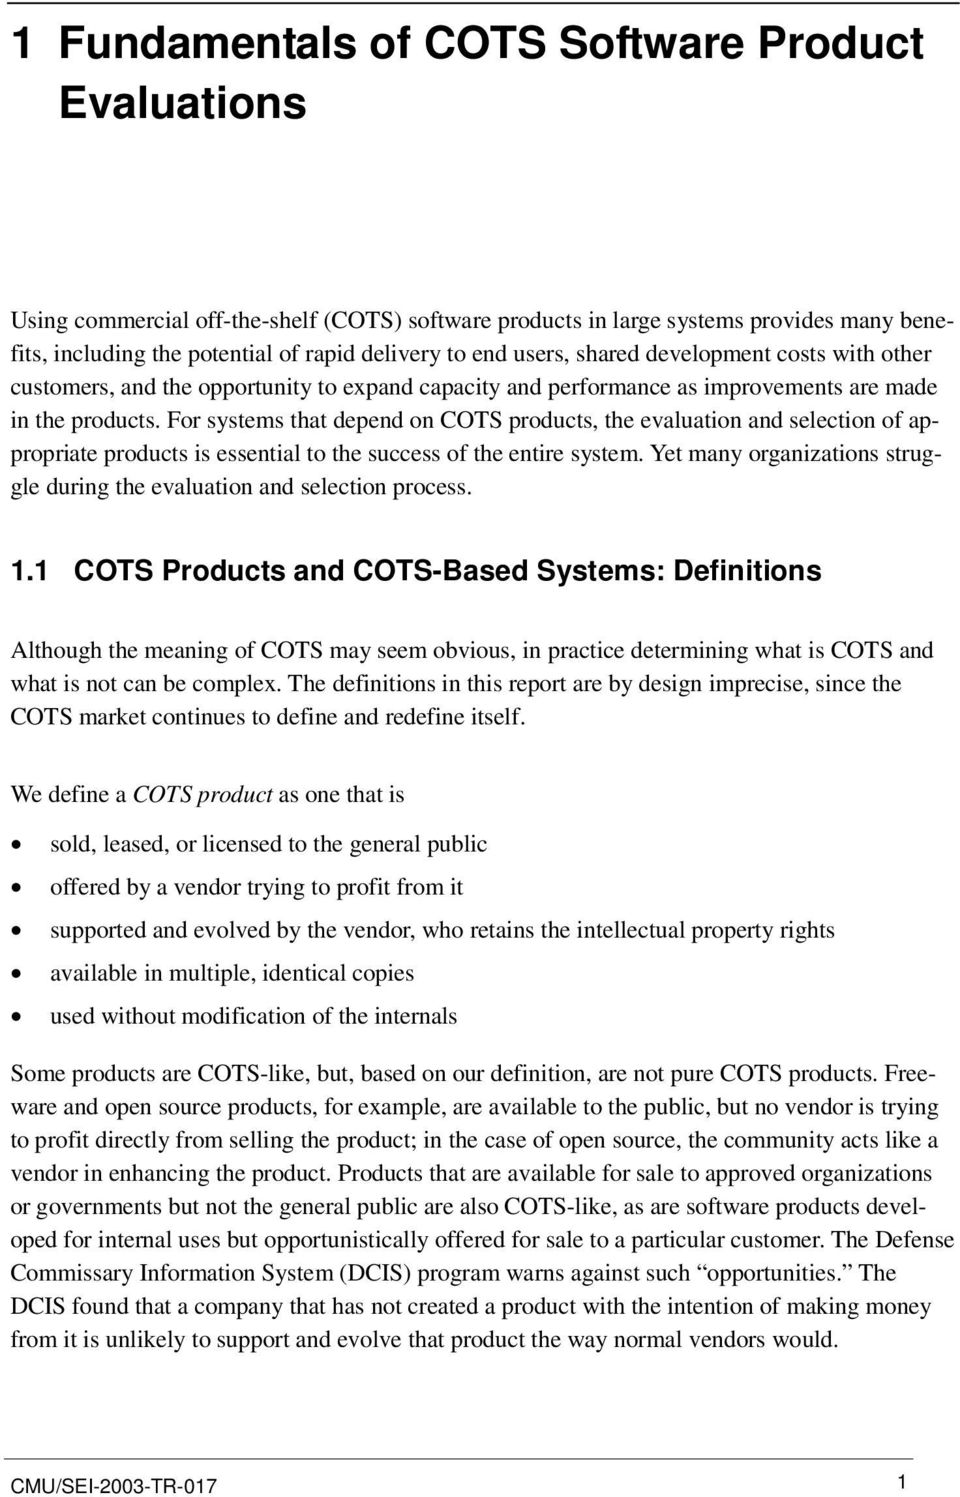 For systems that depend on COTS products, the evaluation and selection of appropriate products is essential to the success of the entire system.